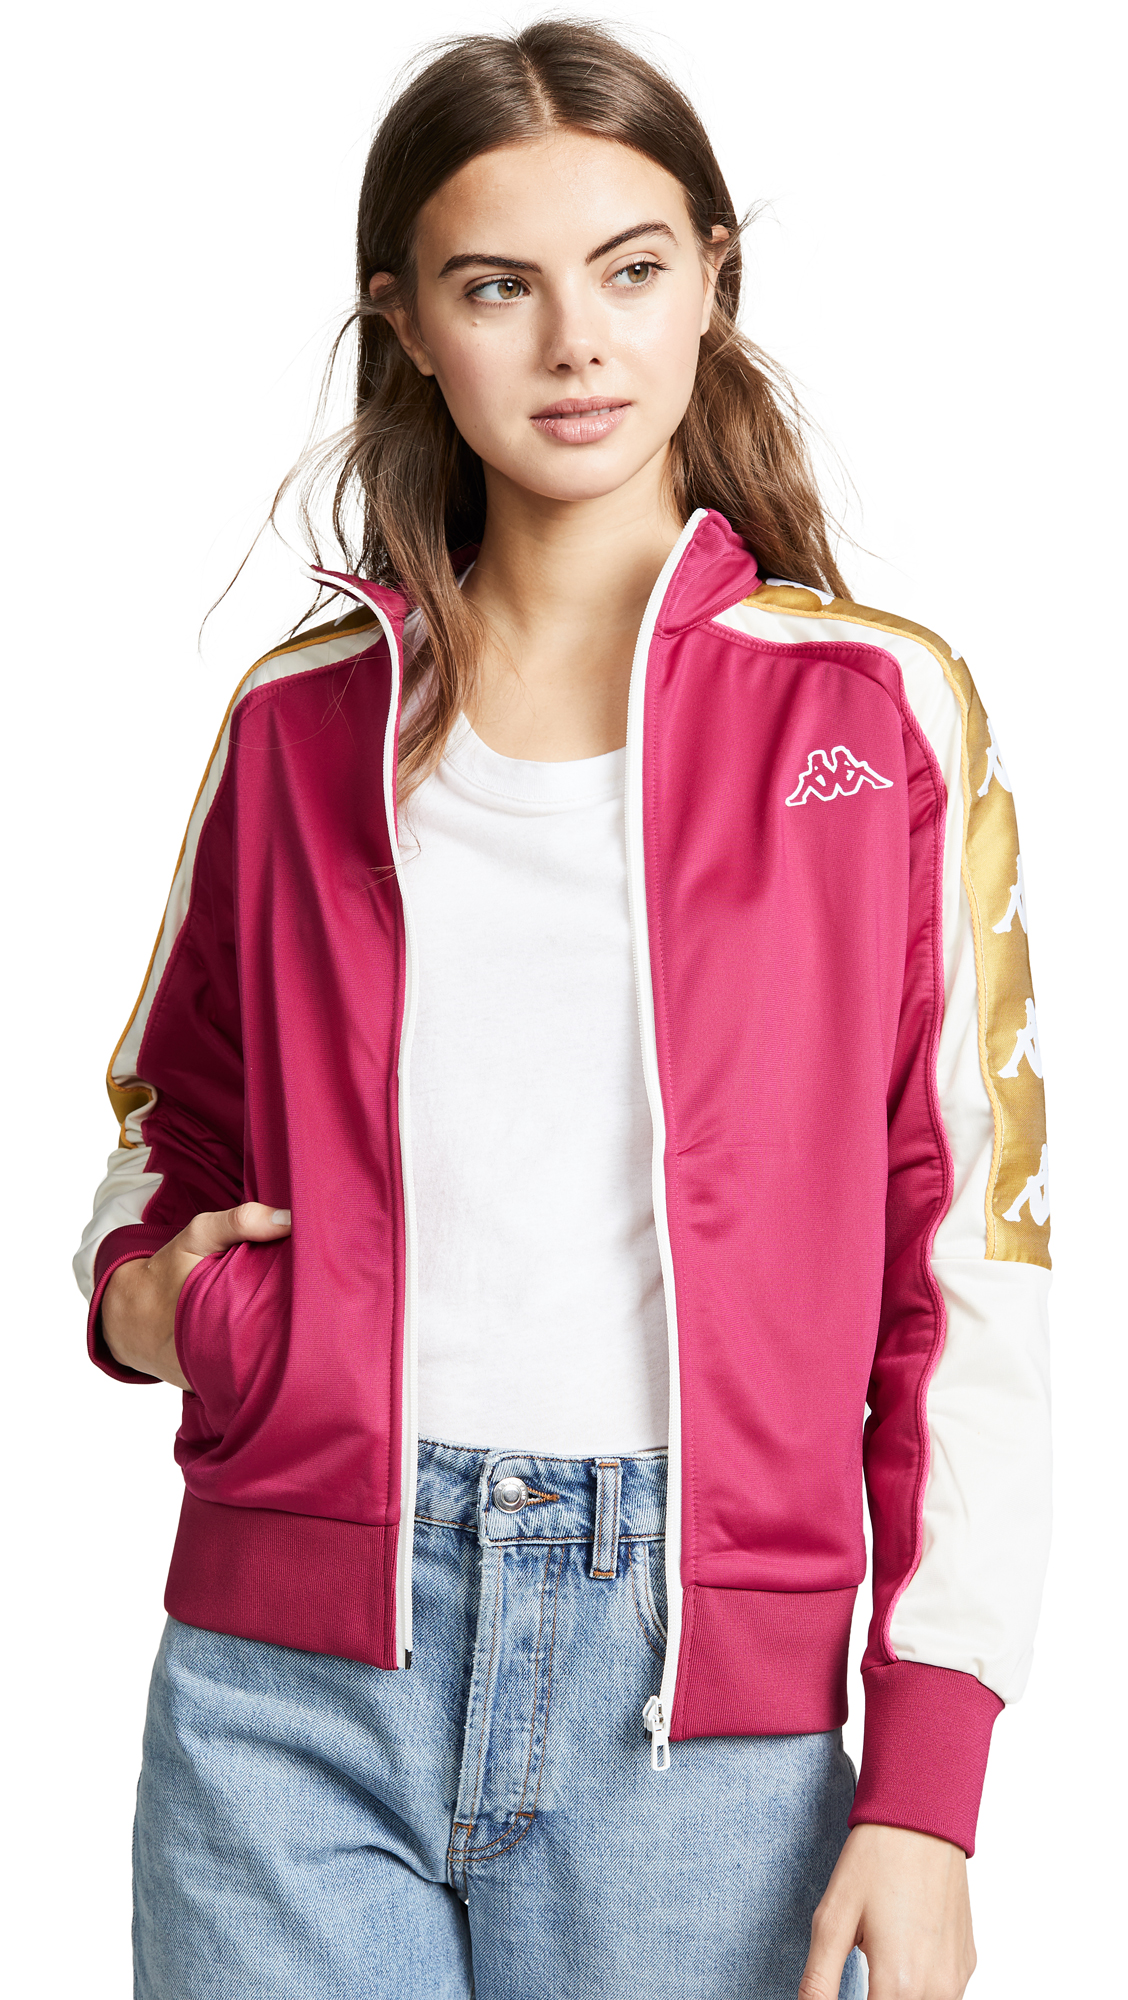 Banda Track Jacket in Red Cerise/White/Gold